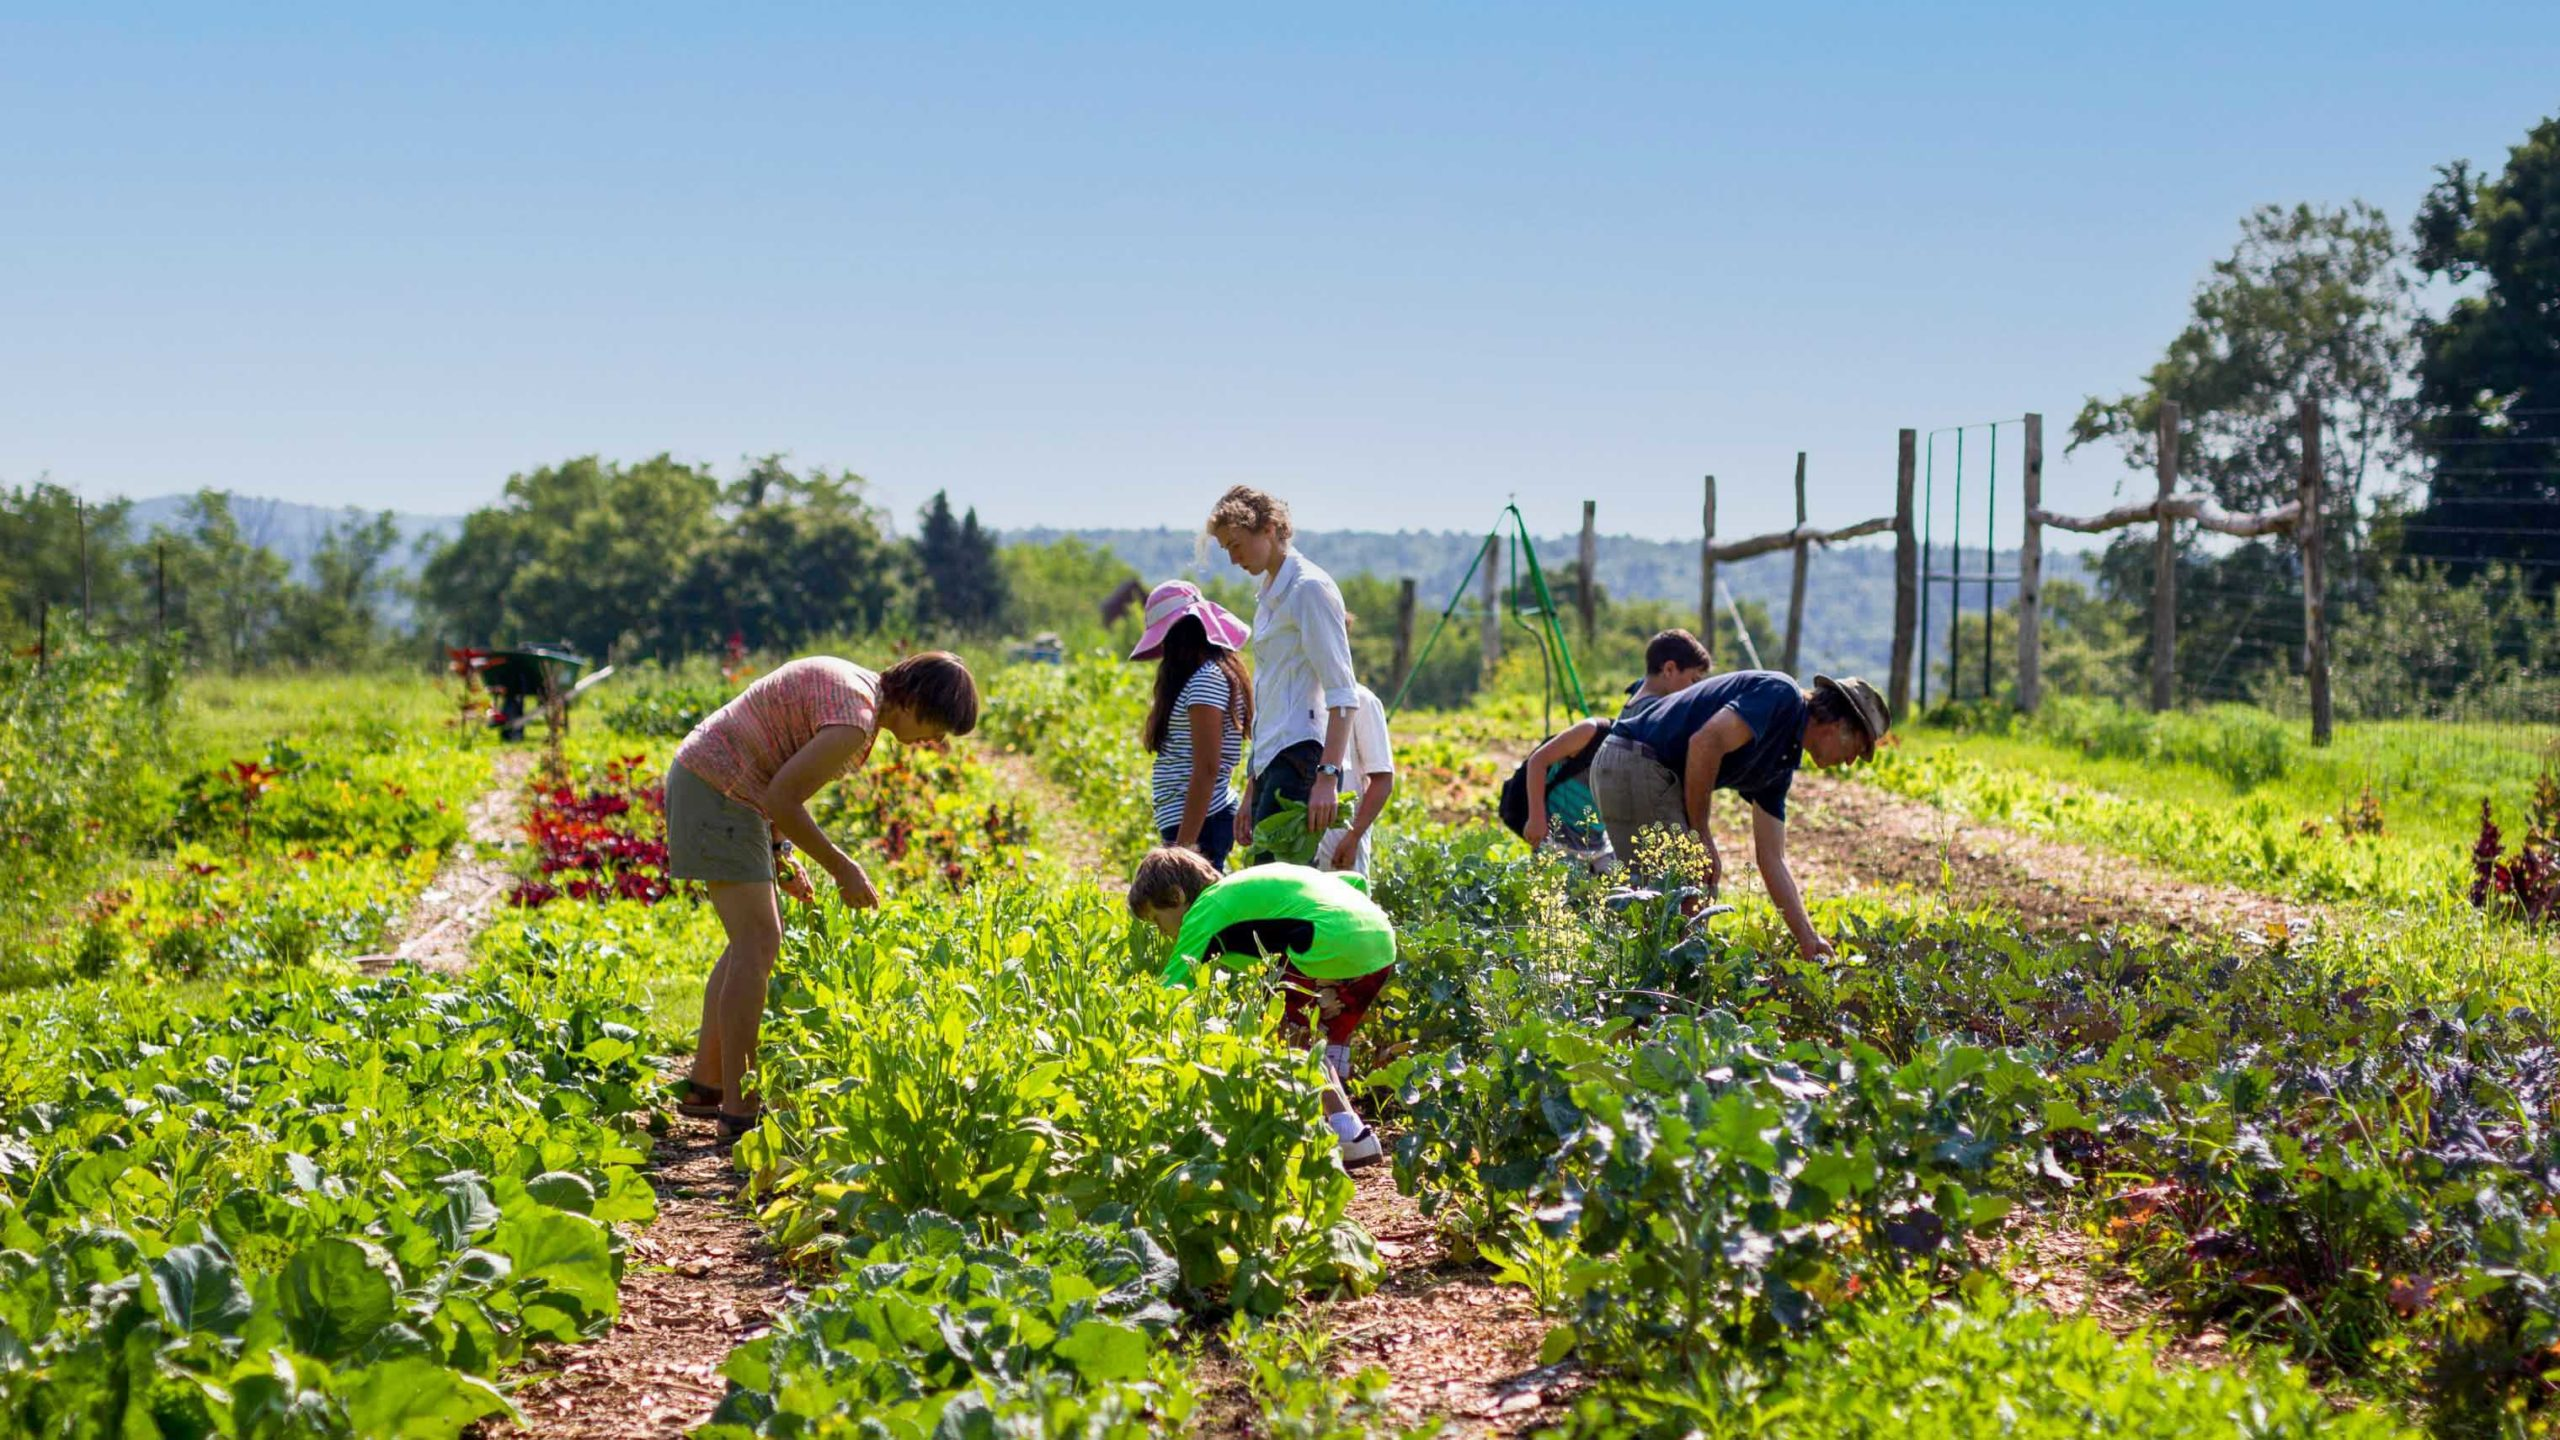 Campers working in the farm garden.